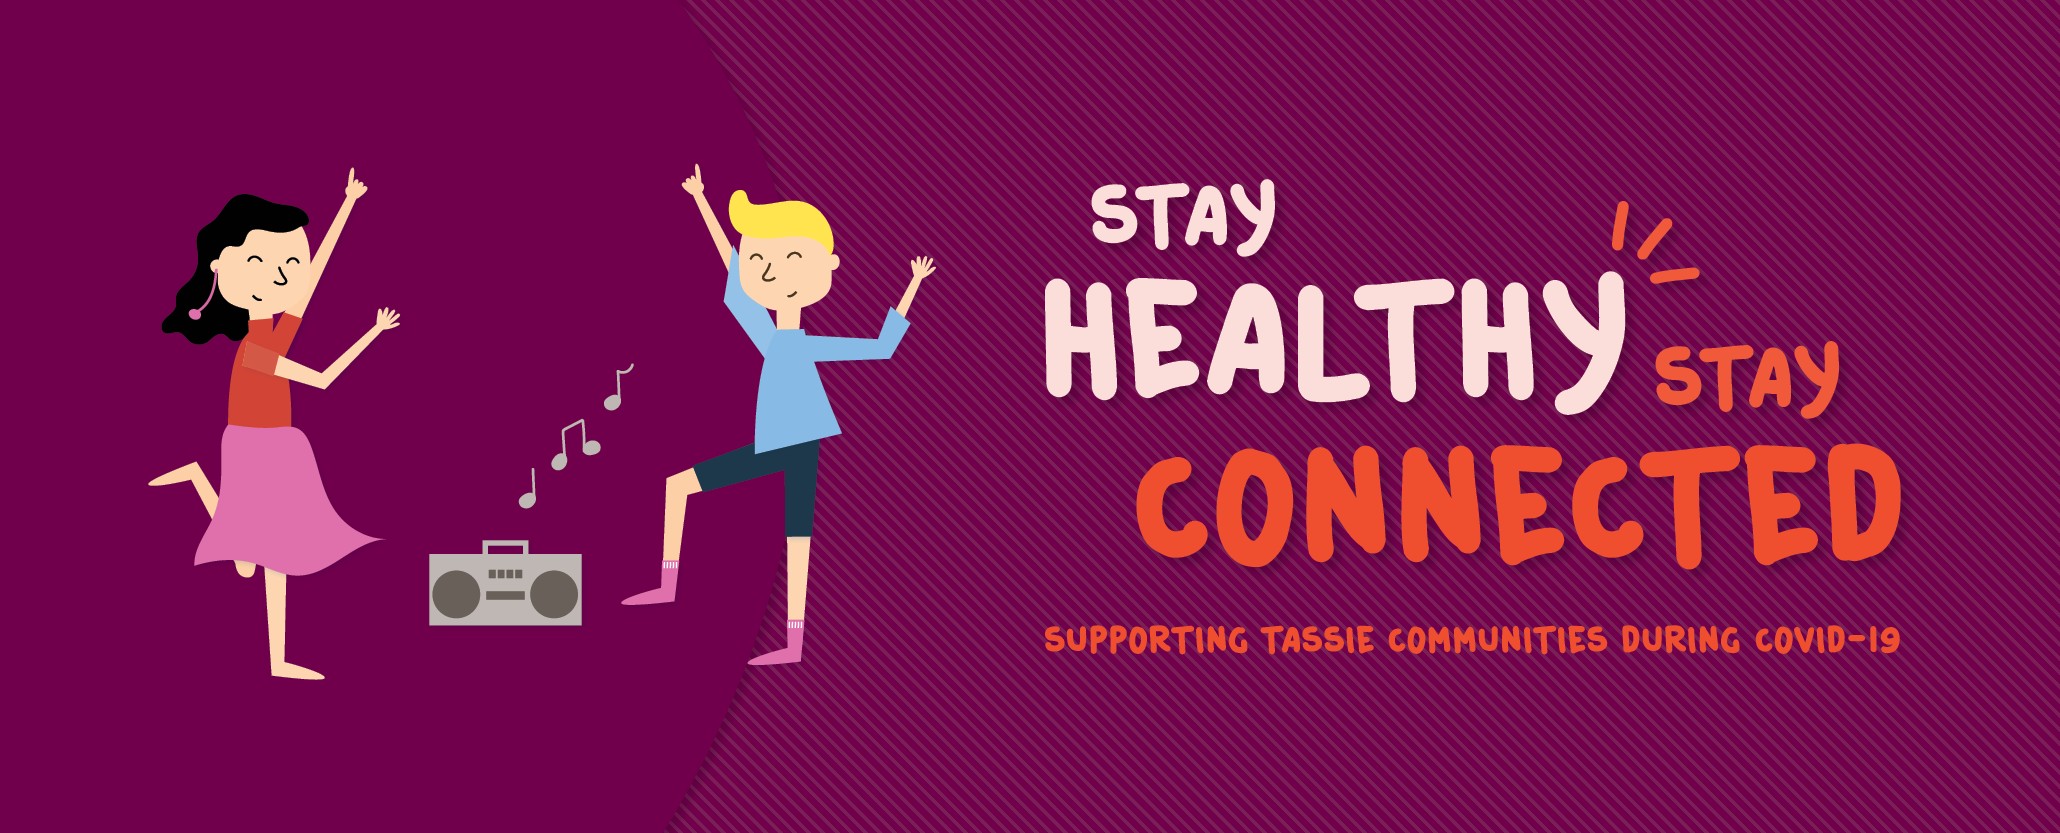 stay-healthy banner